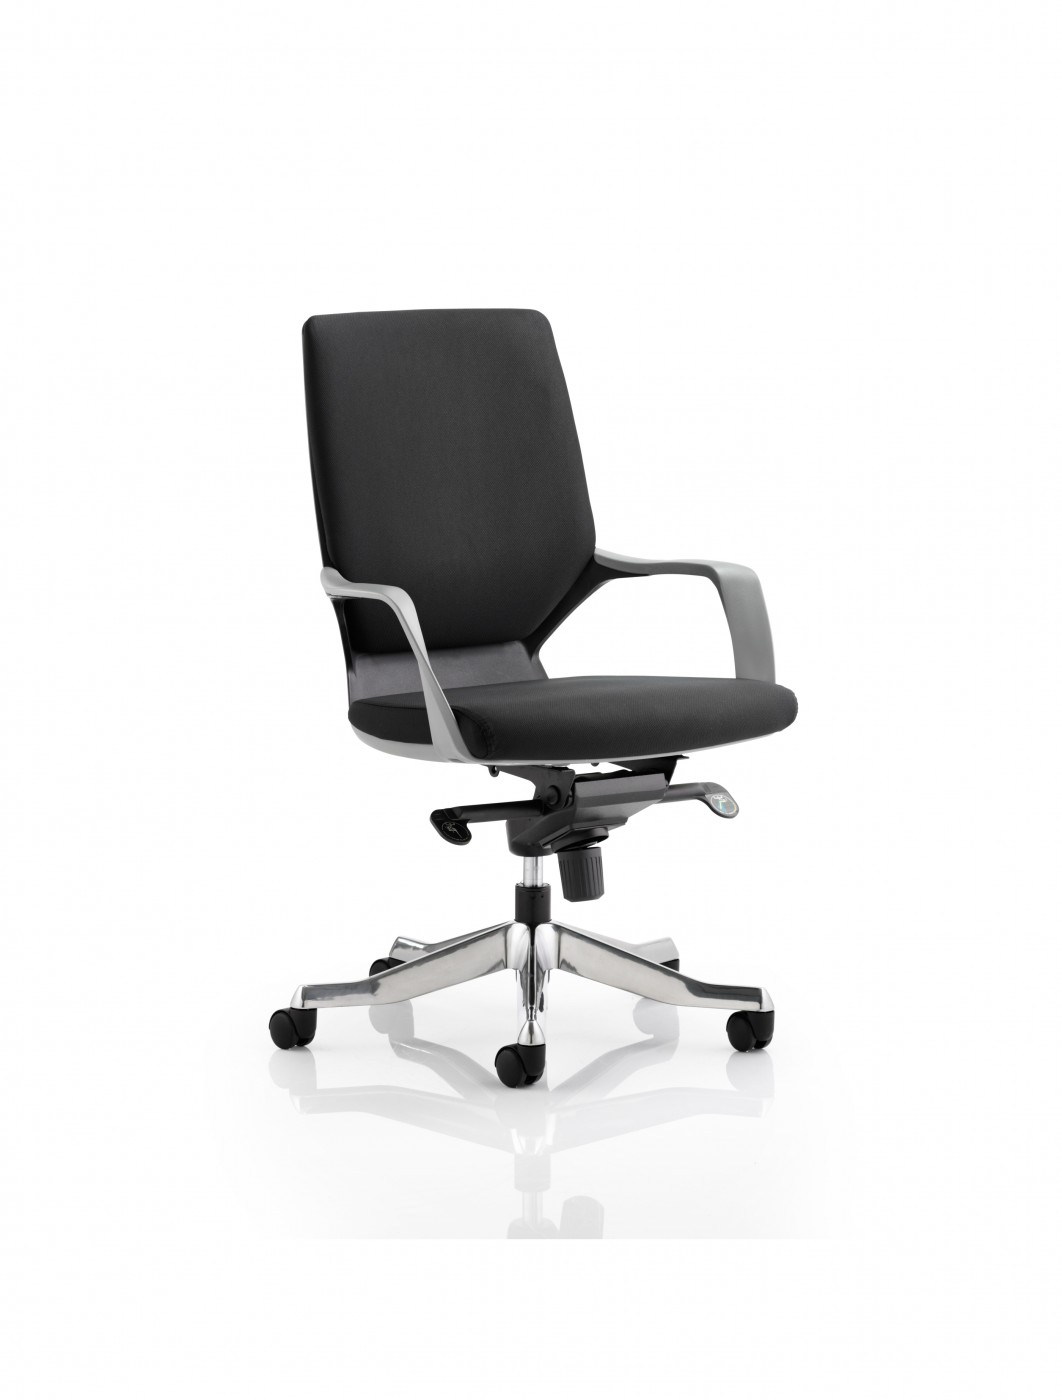 Dynamic Xenon Medium Executive Black Fabric Office Chair   Enlarged View